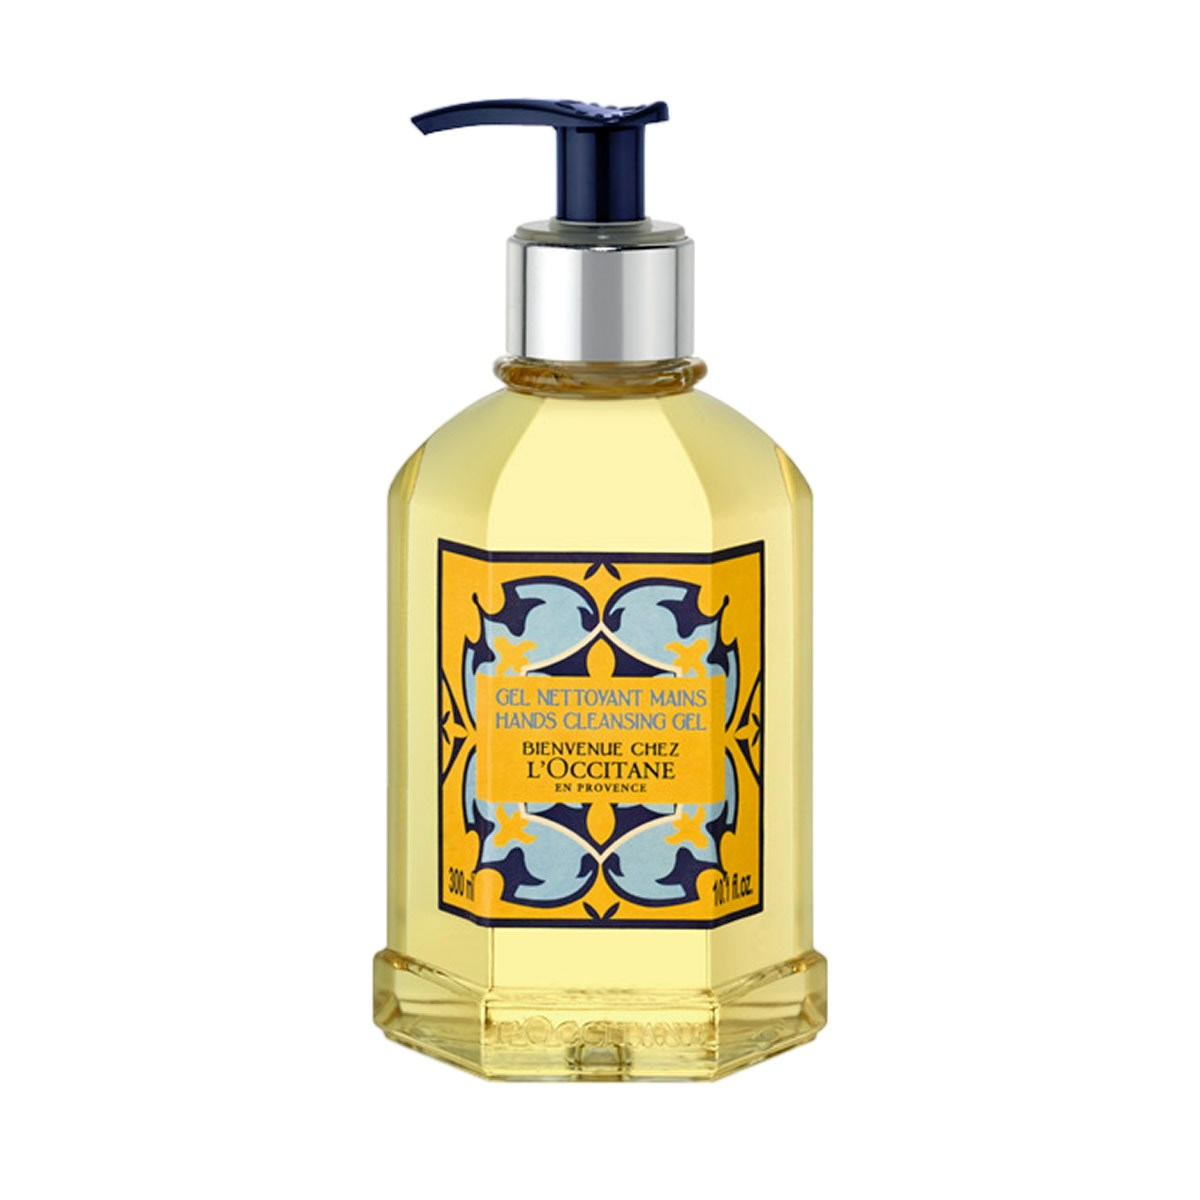 L'Occitane En Provence Welcome Home Hands Cleansing Gel